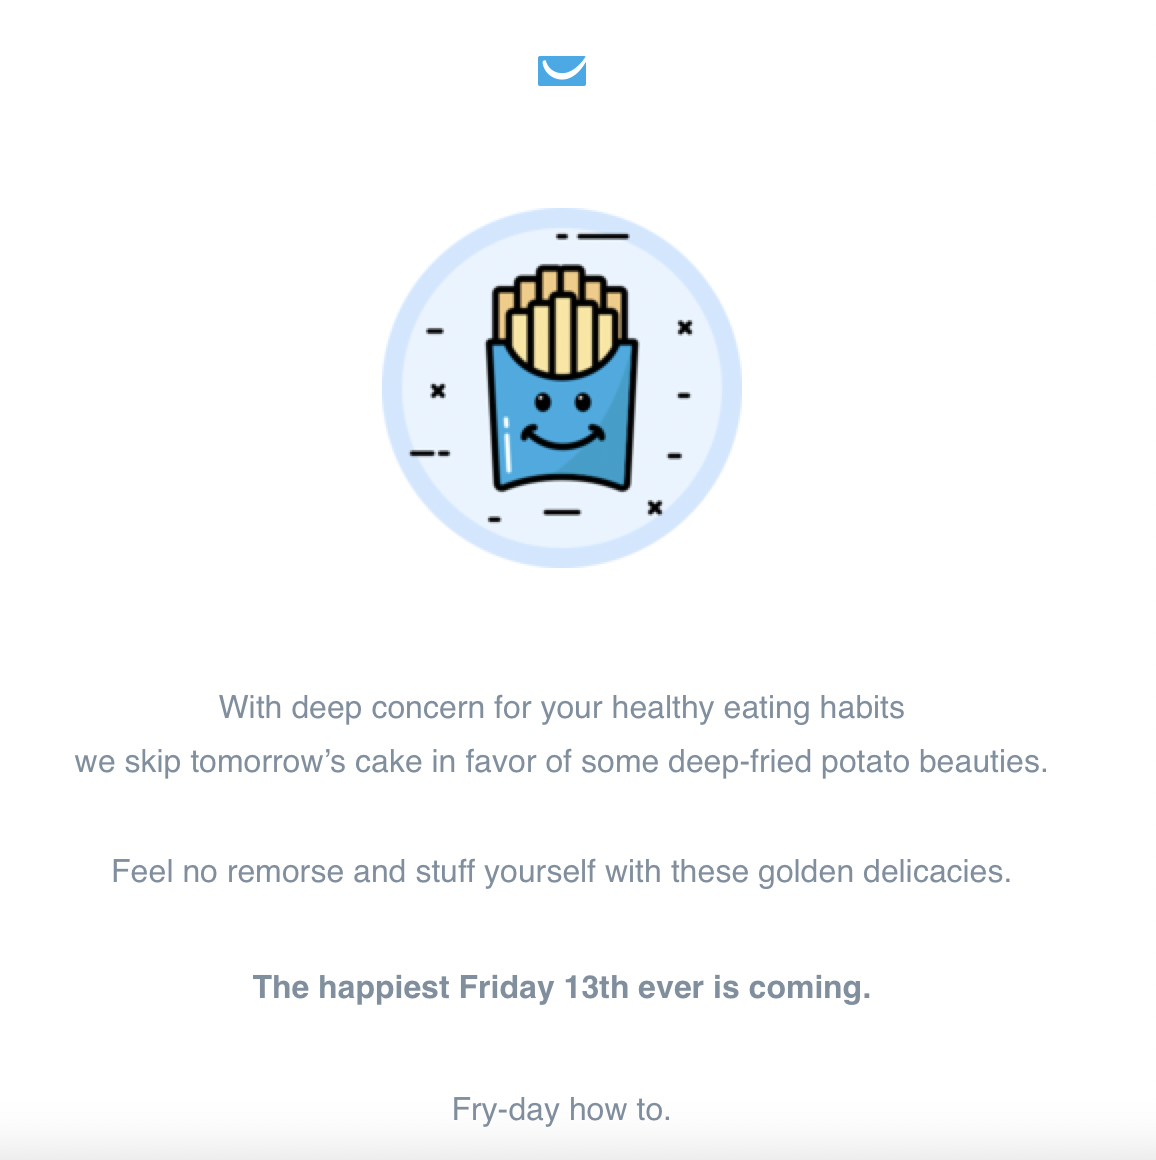 GetResponse email inviting employees to celebrate Fry-day on Friday the 13th.